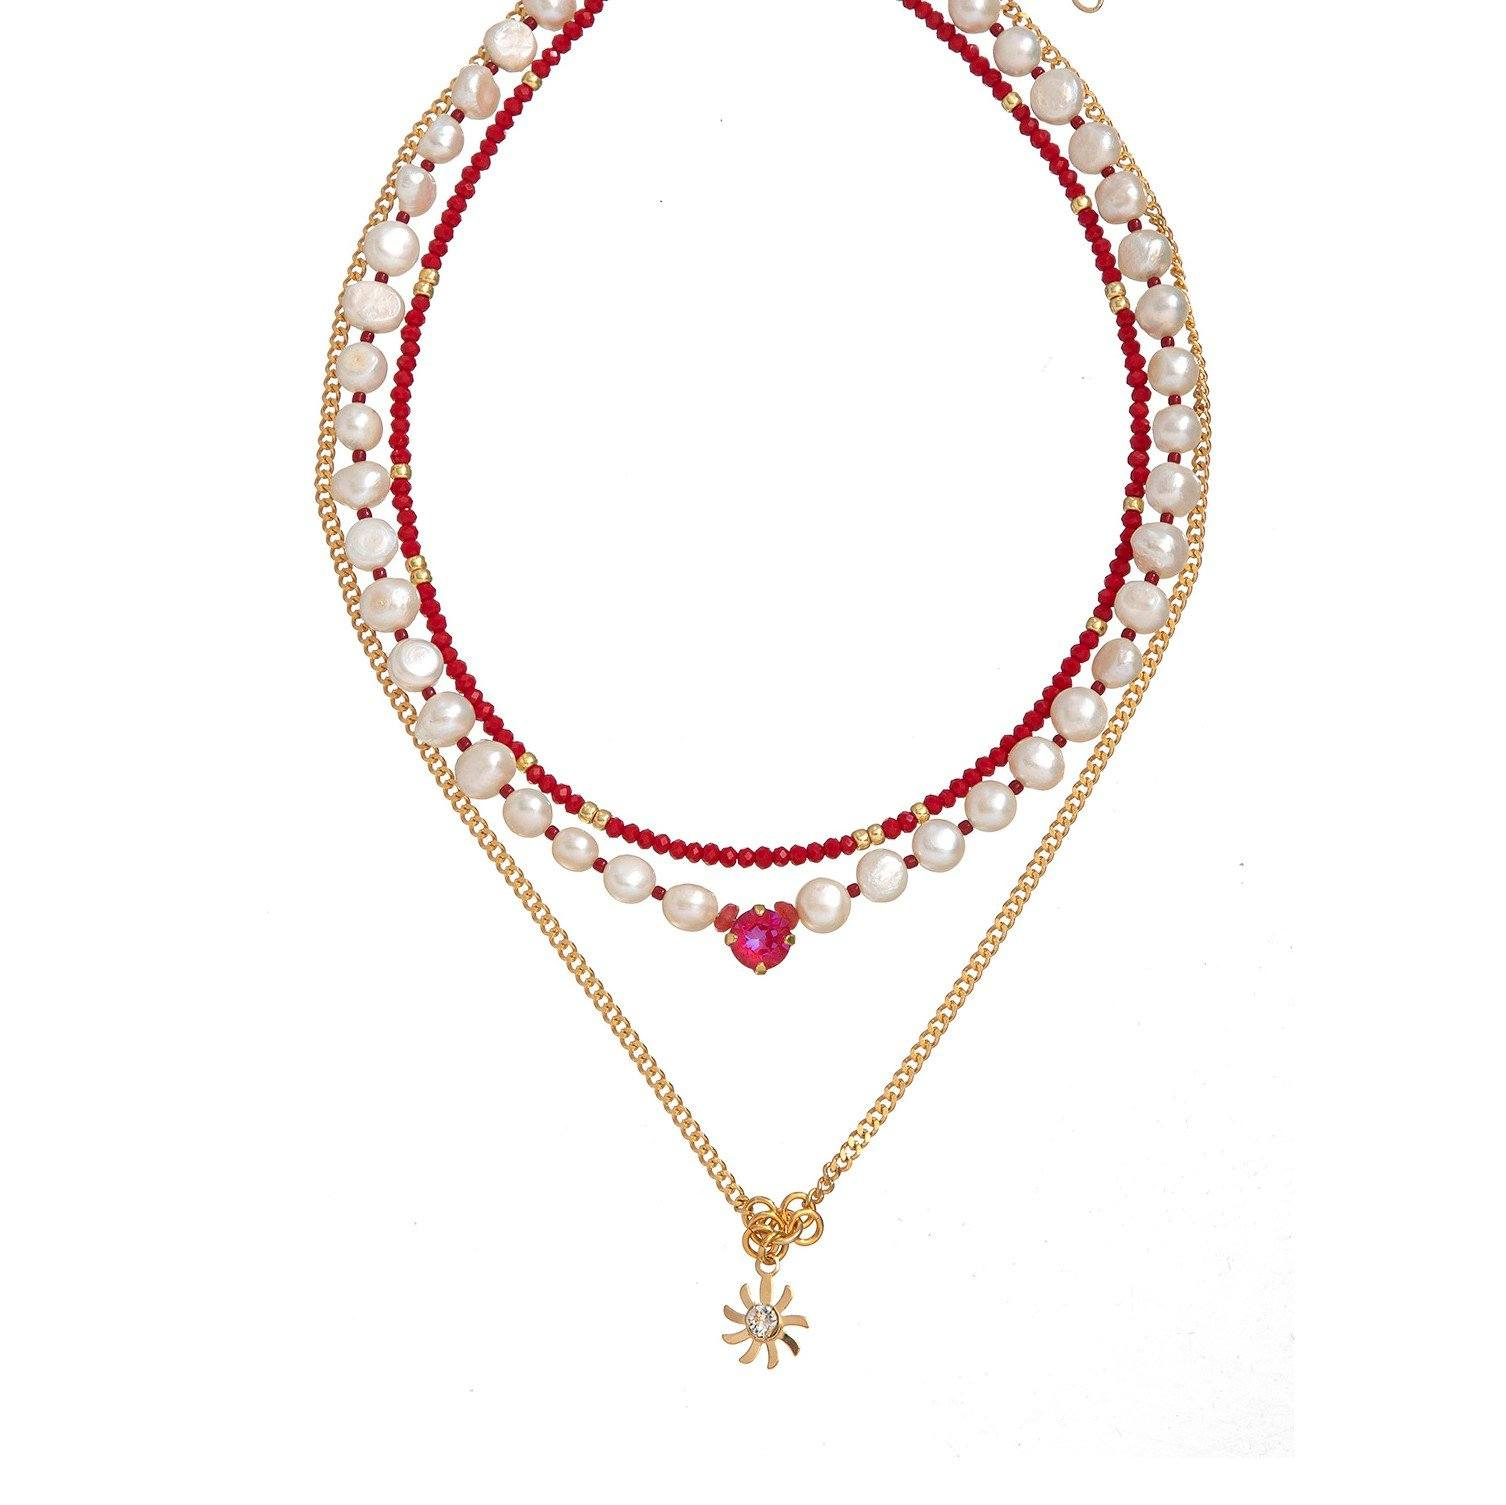 London White Necklace - Red